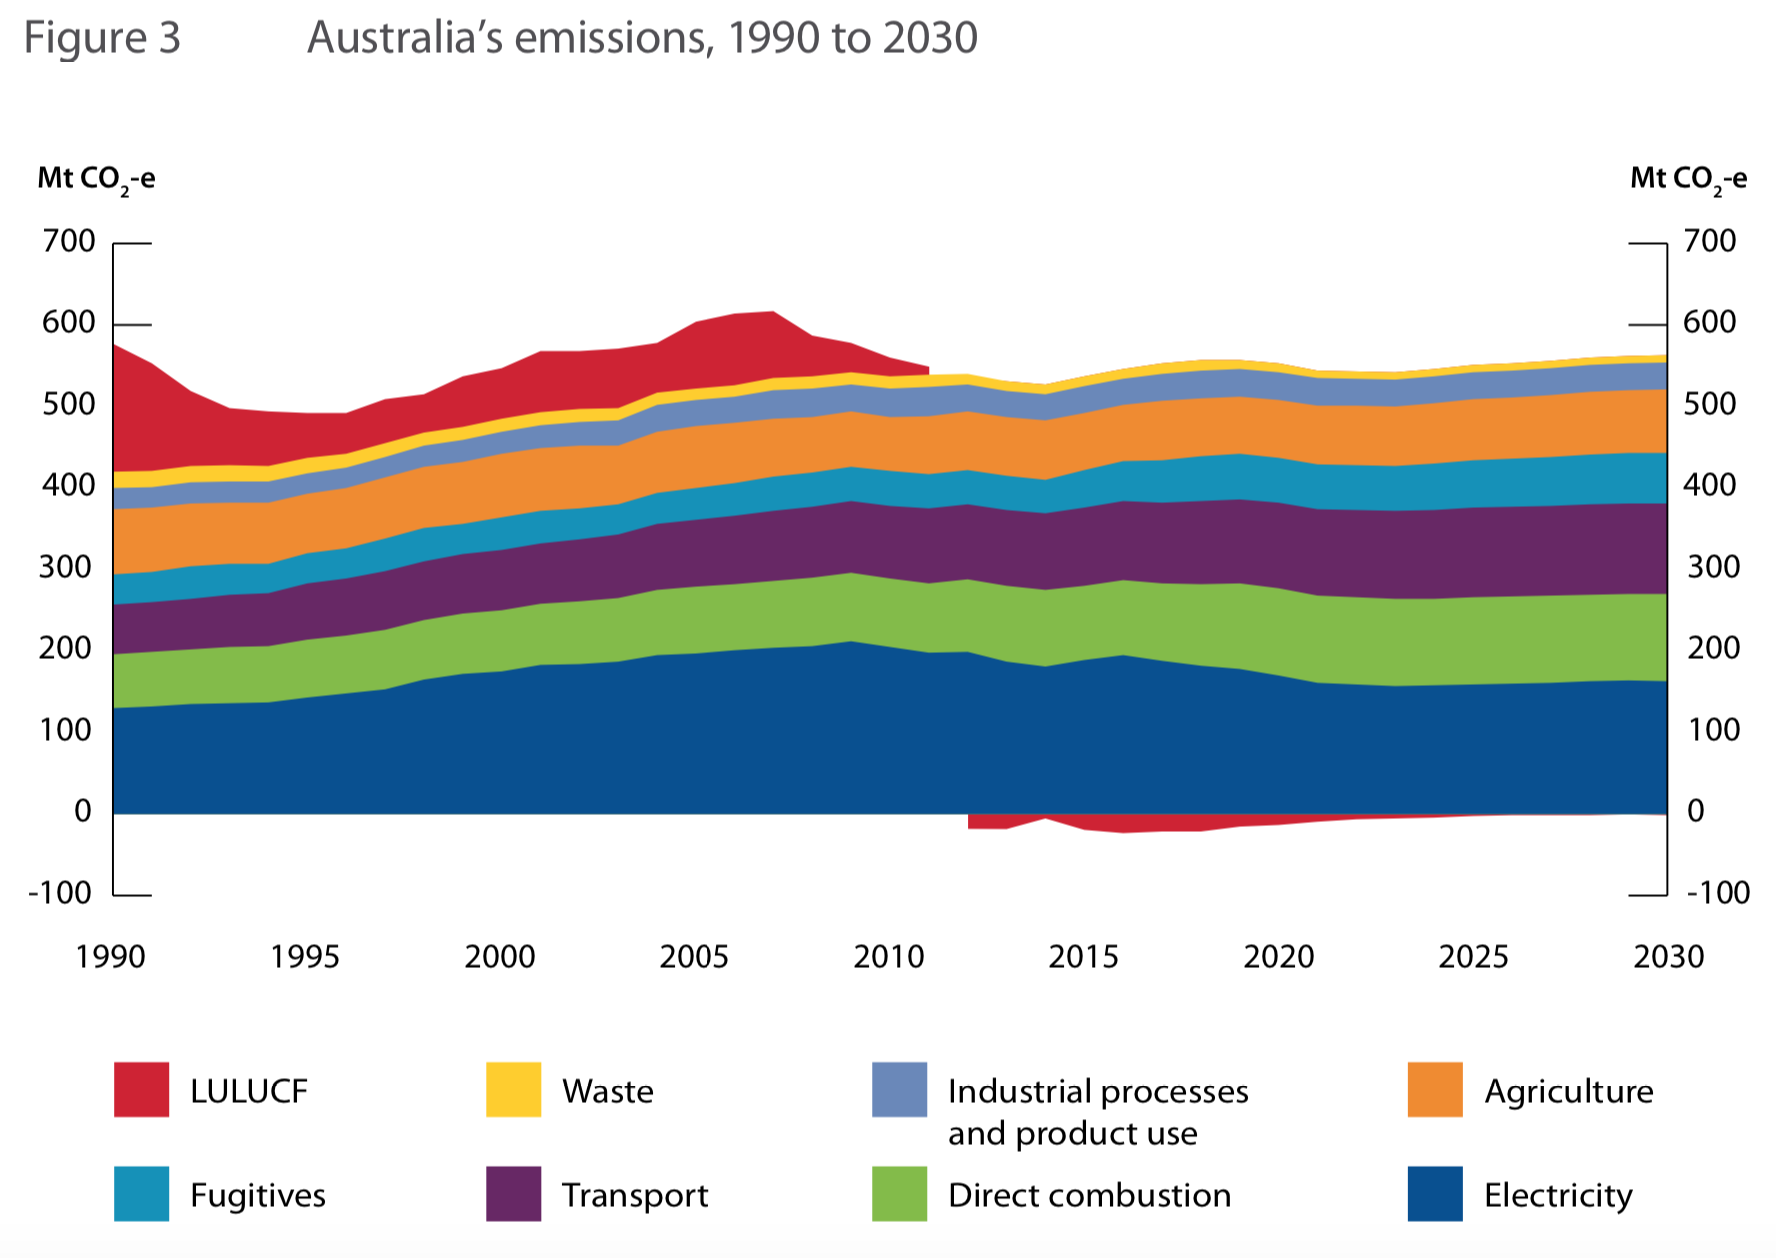 Source:  Australia's emissions projections 2018,  Commonwealth of Australia 2018